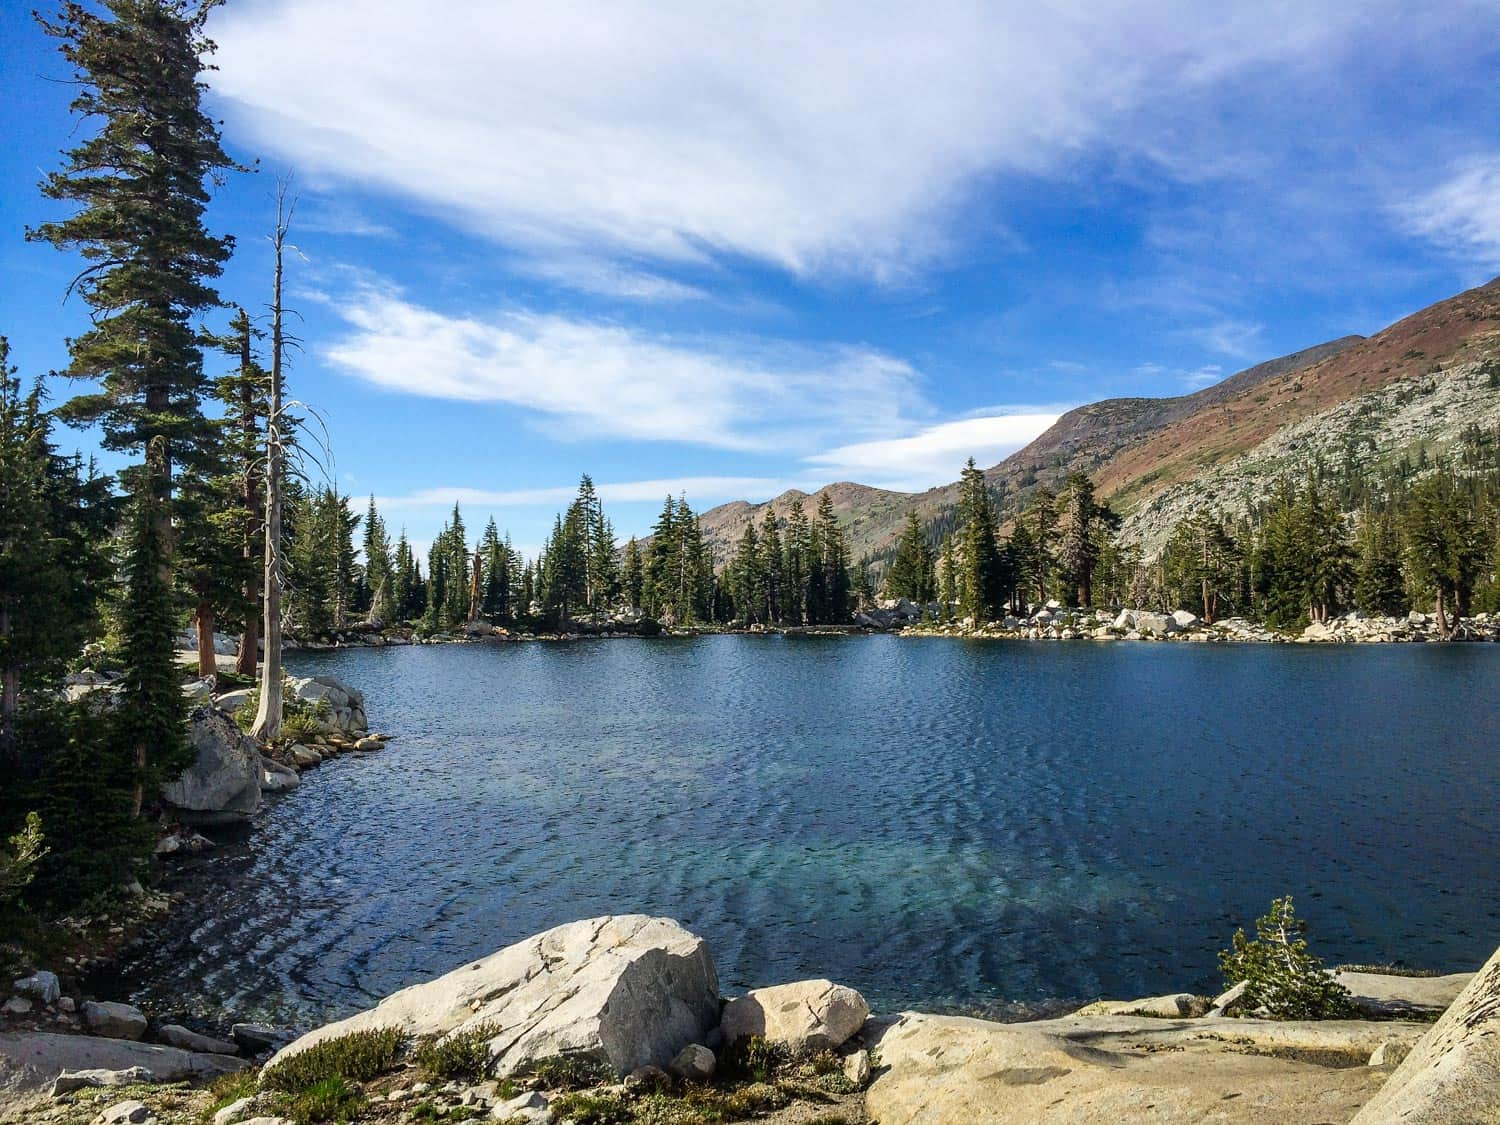 sierra nevada alpine lake camping